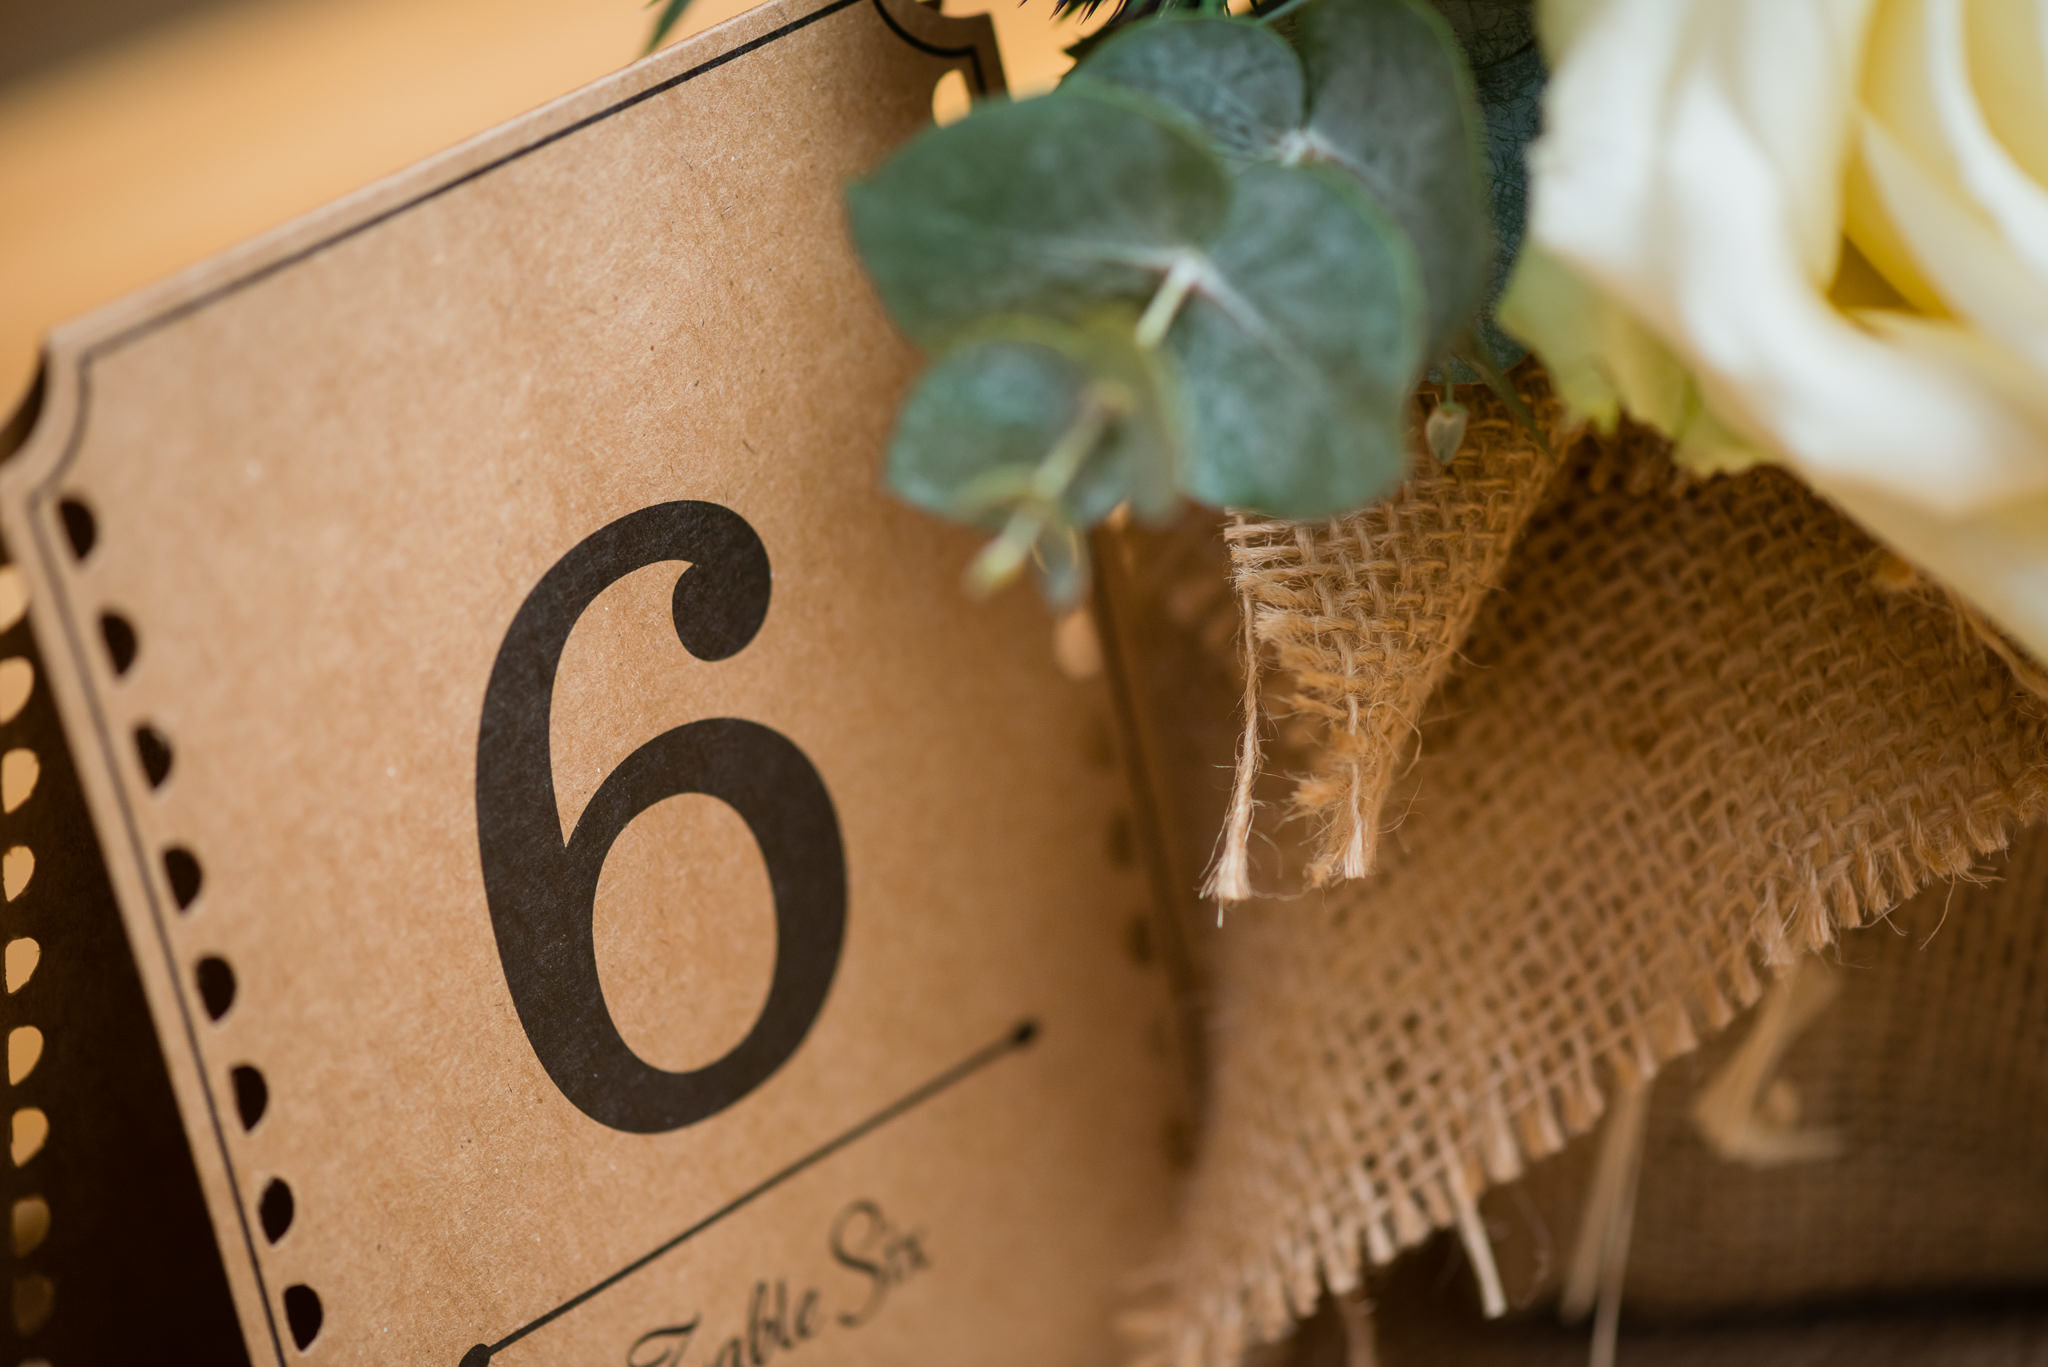 Table numbers at the tipi wedding